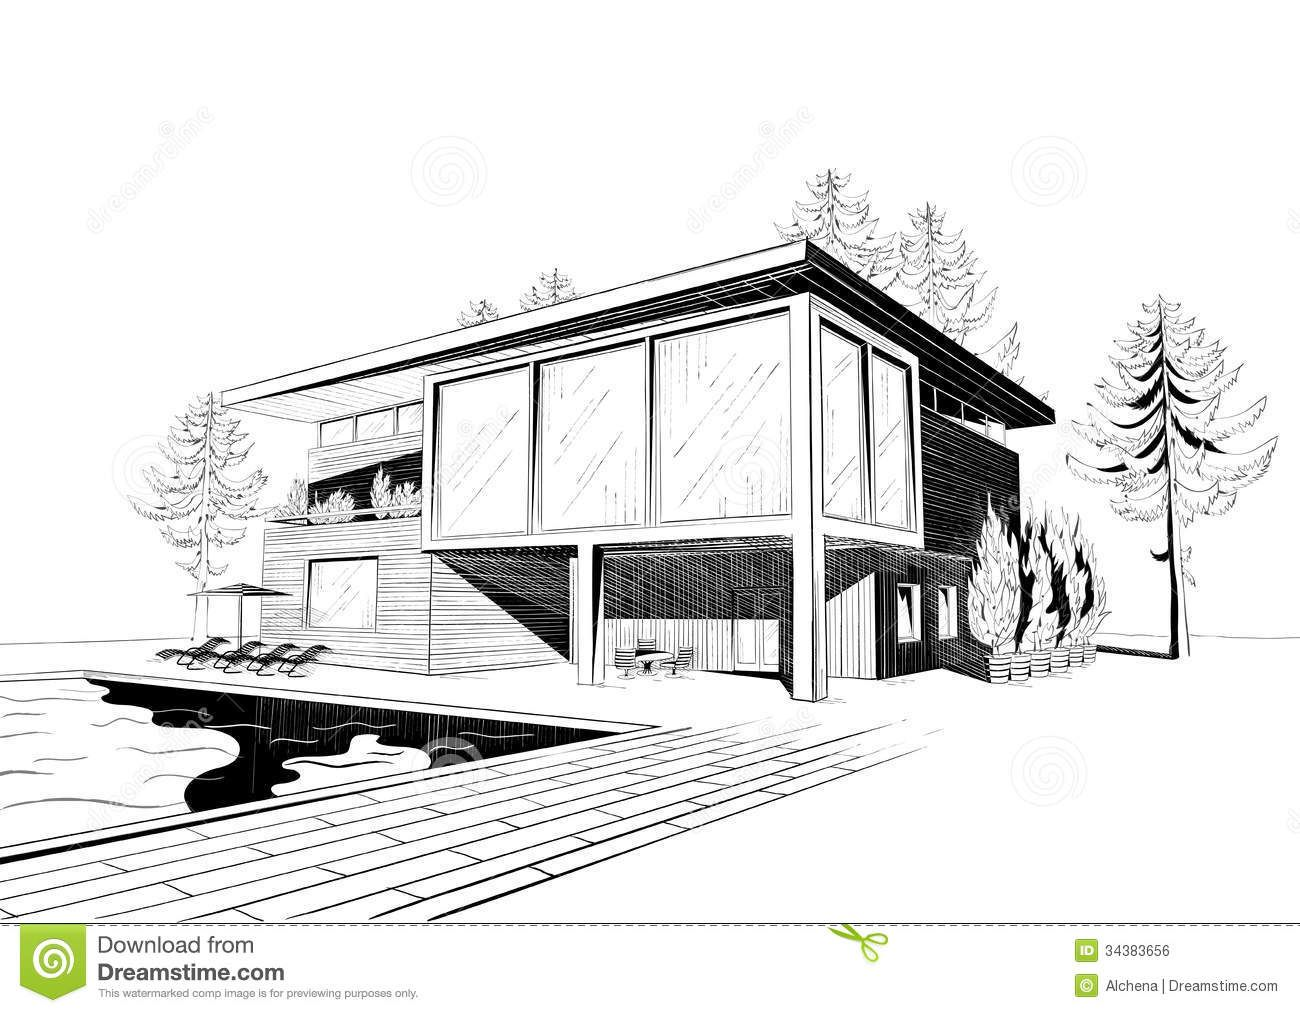 Excellent modern home architecture sketches on home design for Architecture modern house design 2 point perspective view